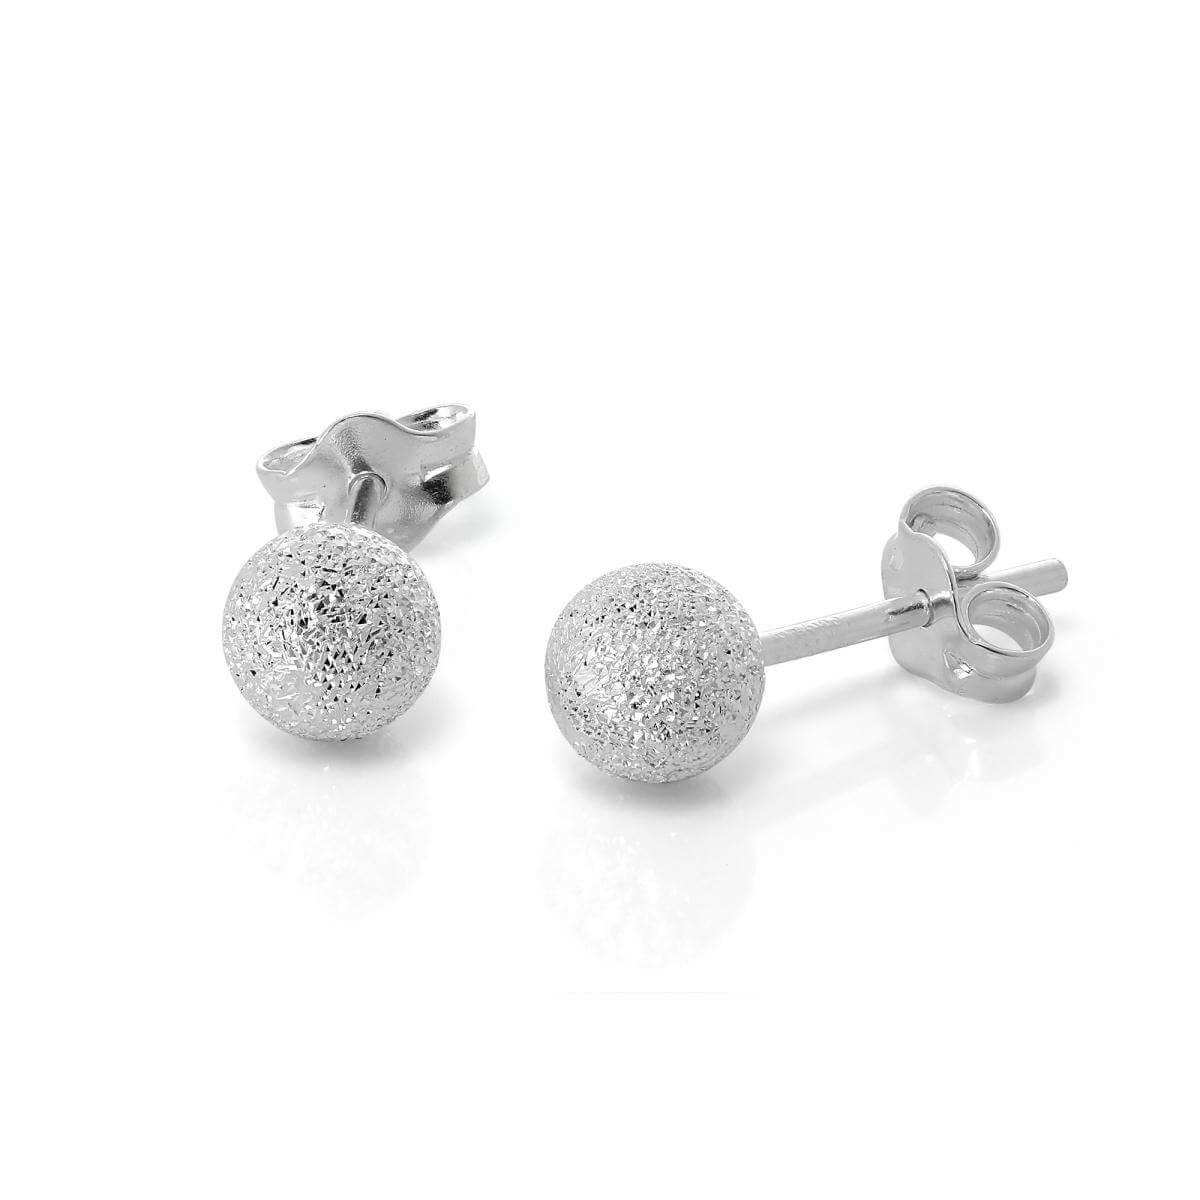 Frosted Sterling Silver Ball Stud Earrings 5mm